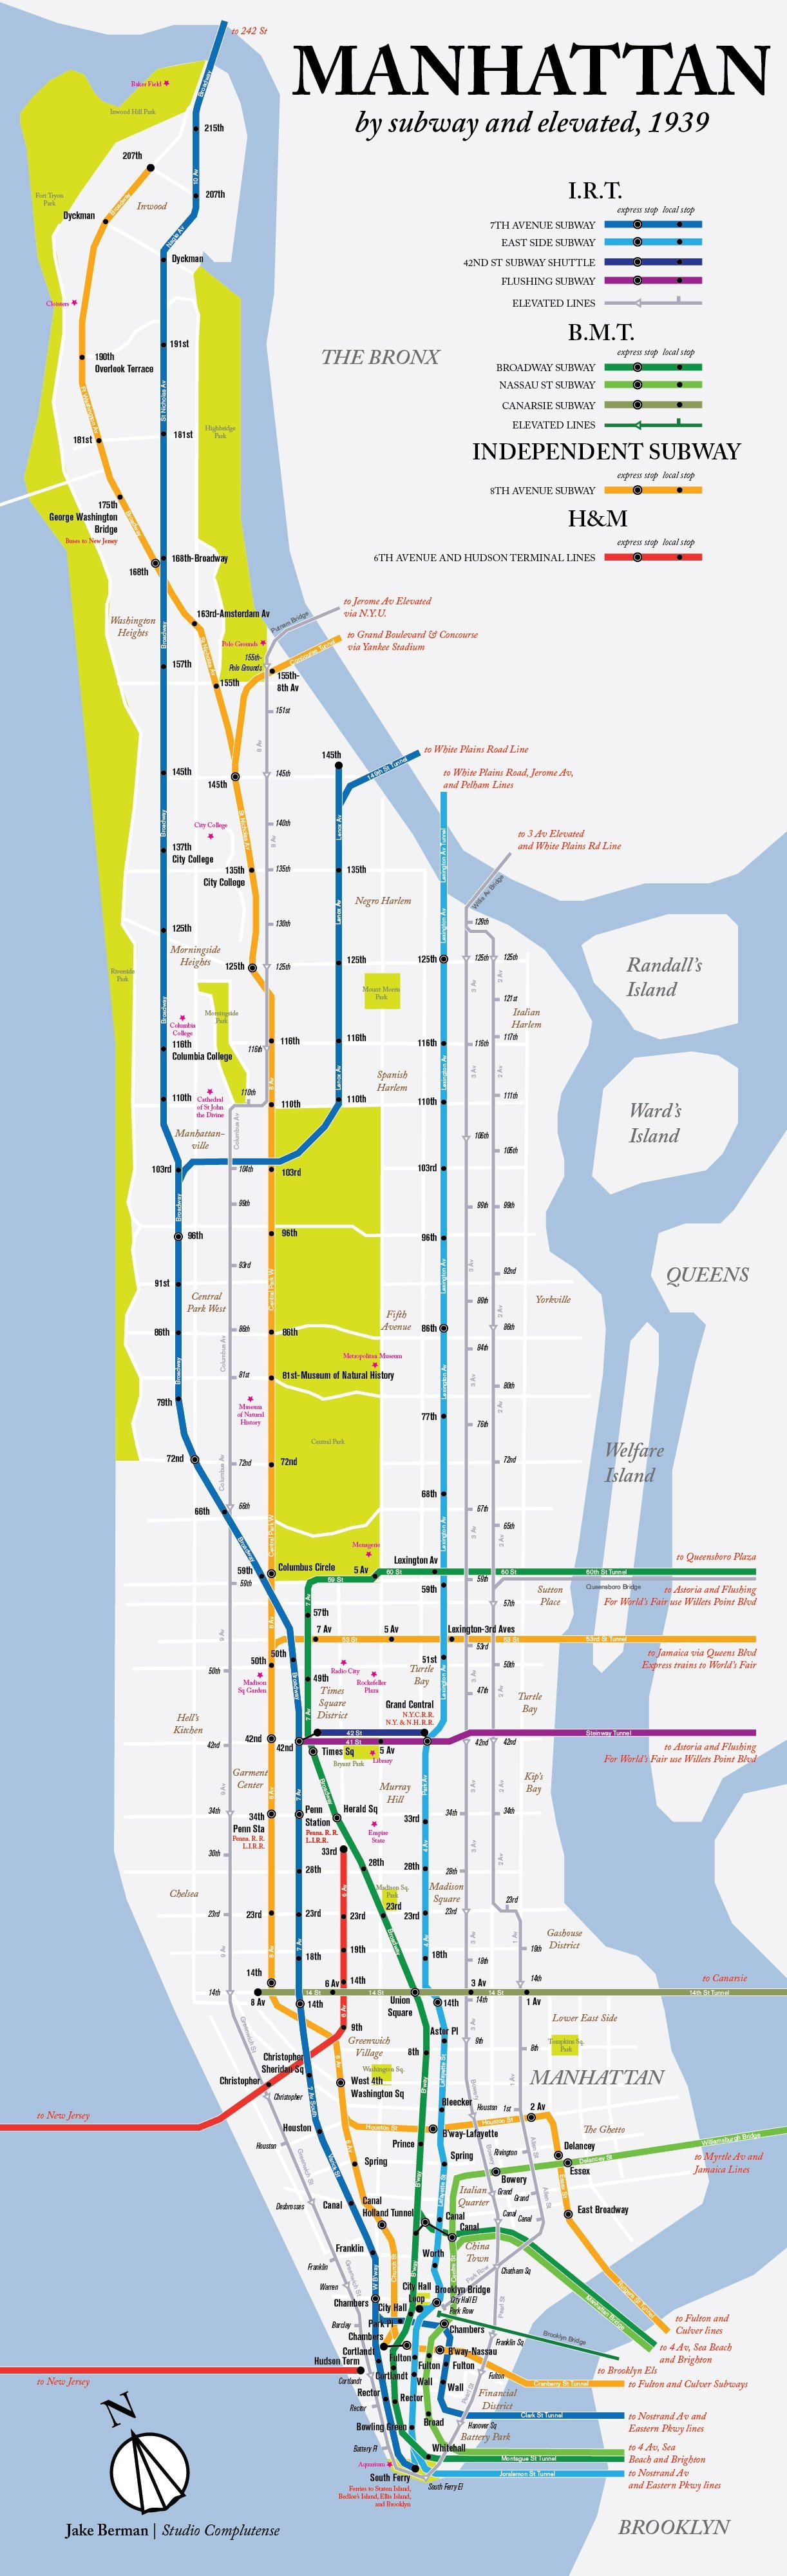 Nyc Subway Map Jpeg.Map Here S What The Nyc Subway System Looked Like In 1939 6sqft